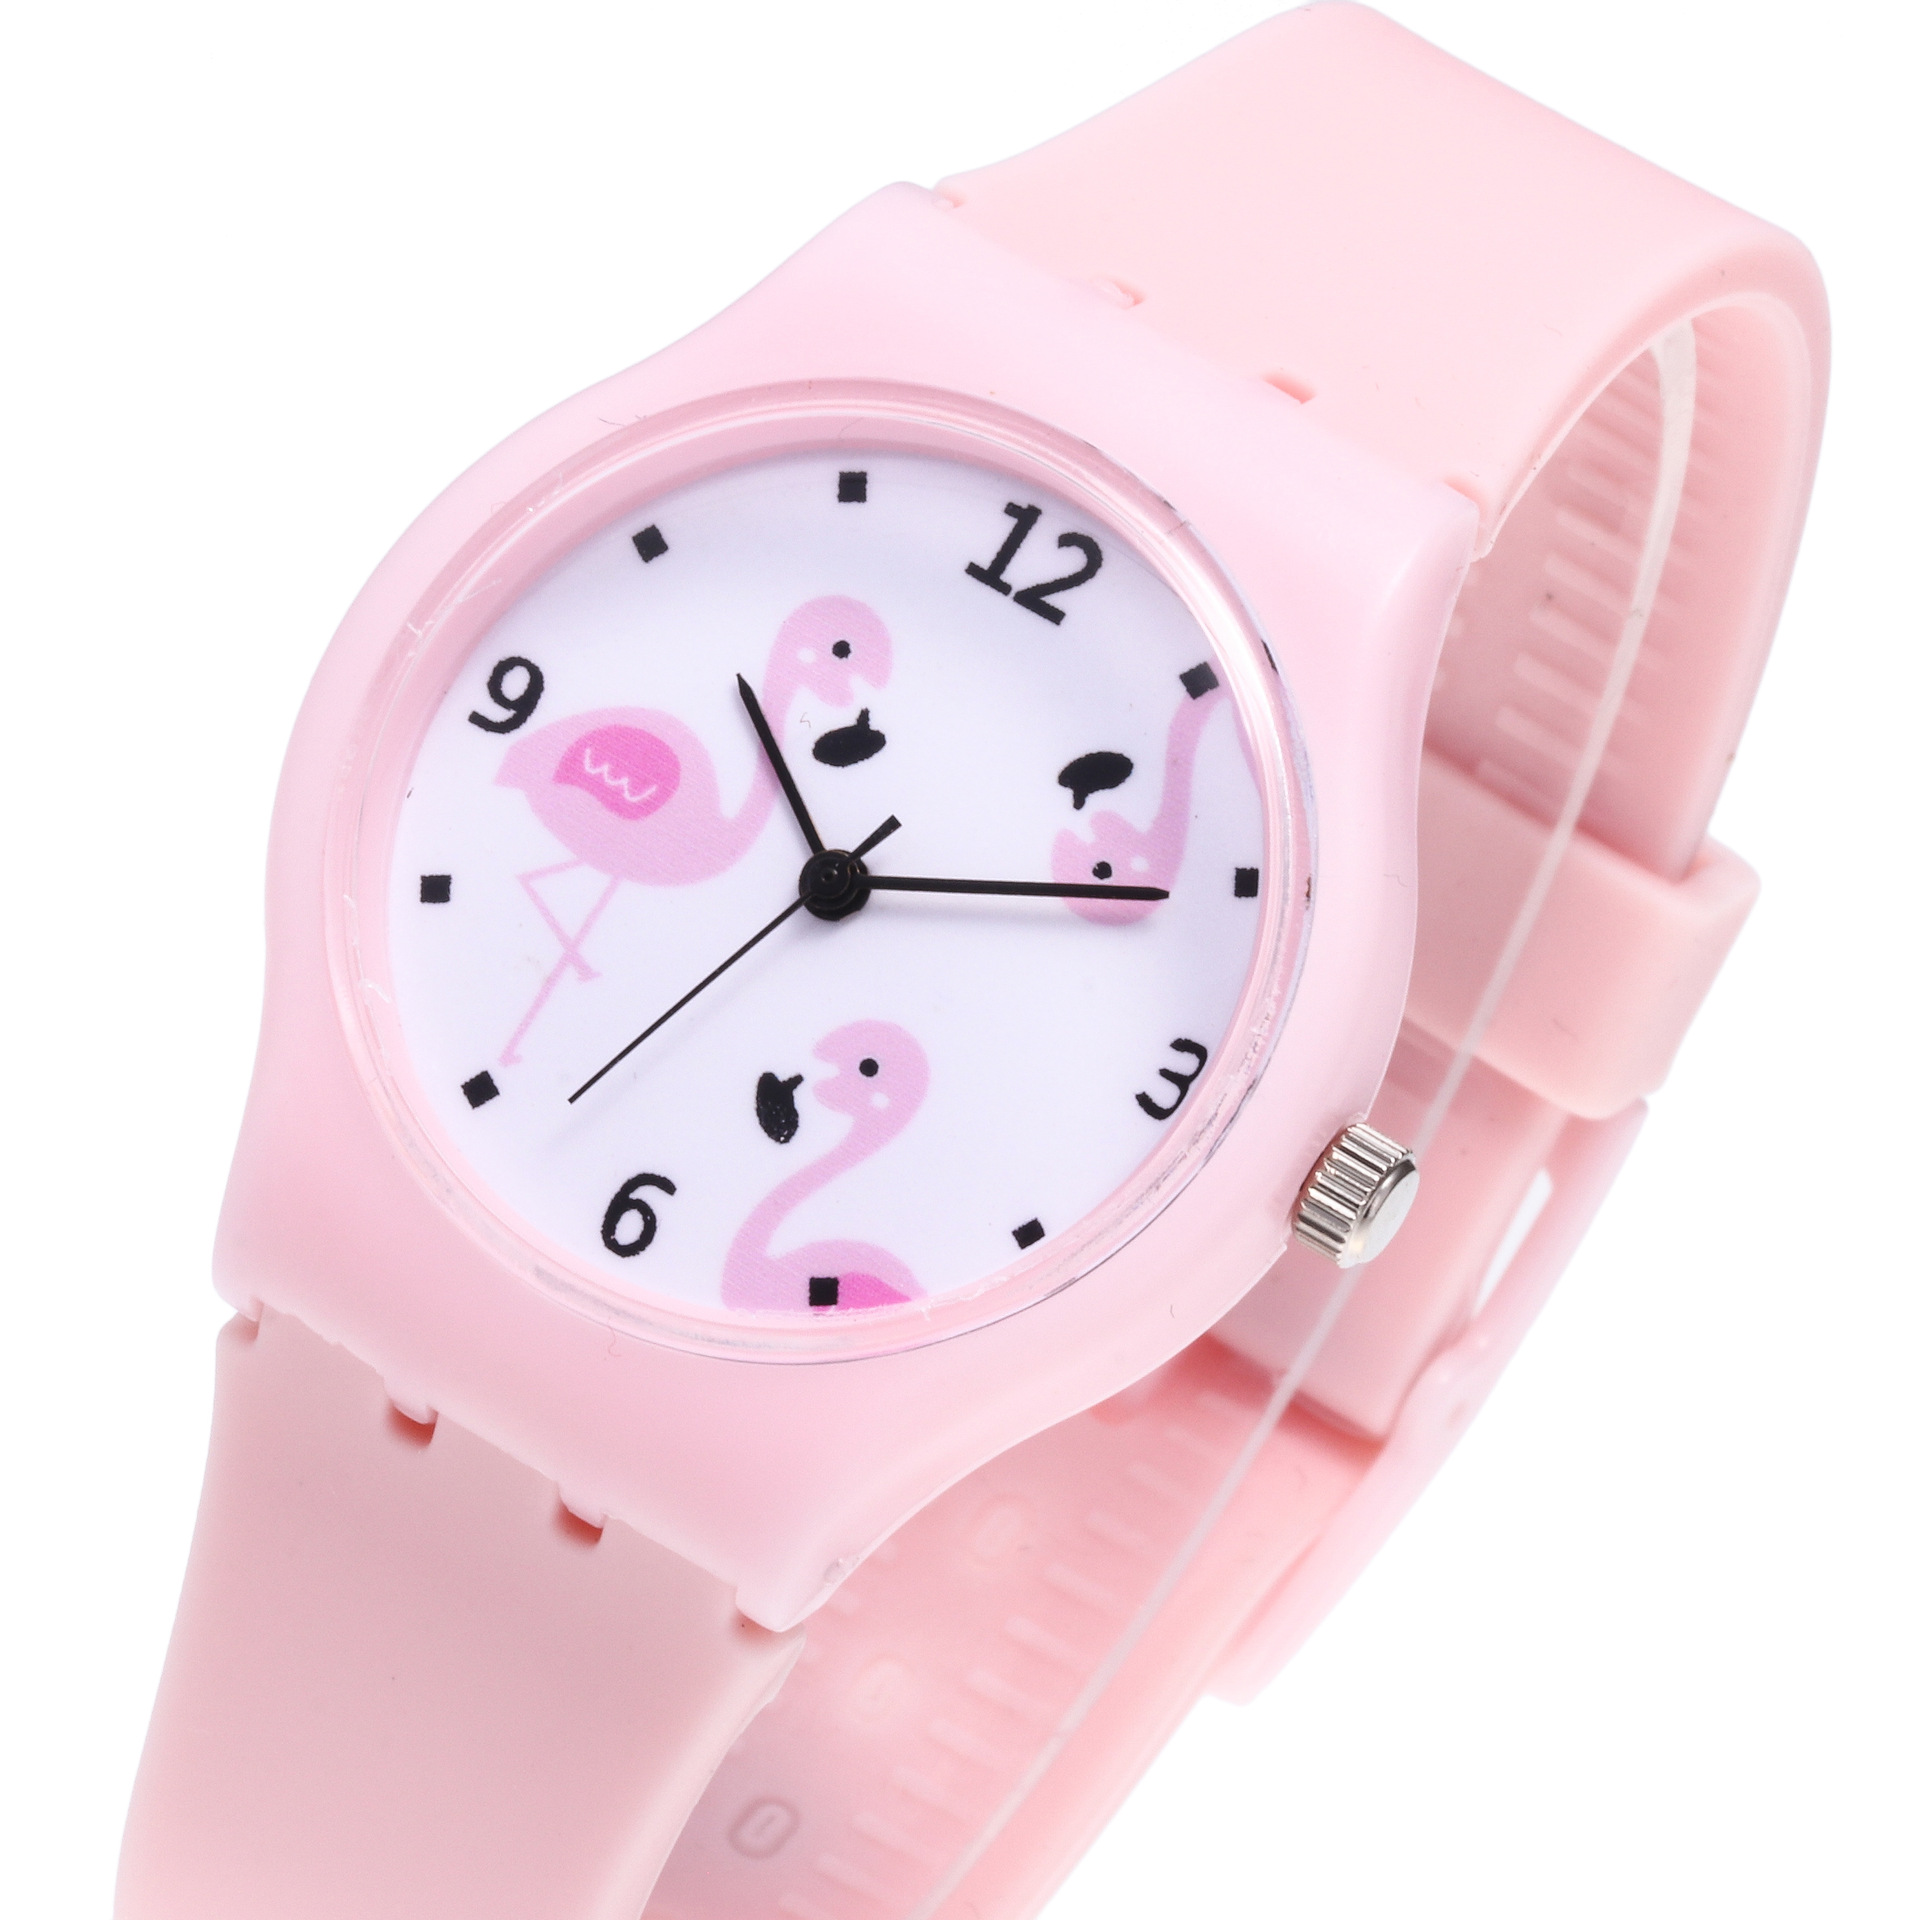 Silicone Watch Clock Gifts Flamingos Girls Boys Children's Cartoon Wrist Quartz Fashion title=